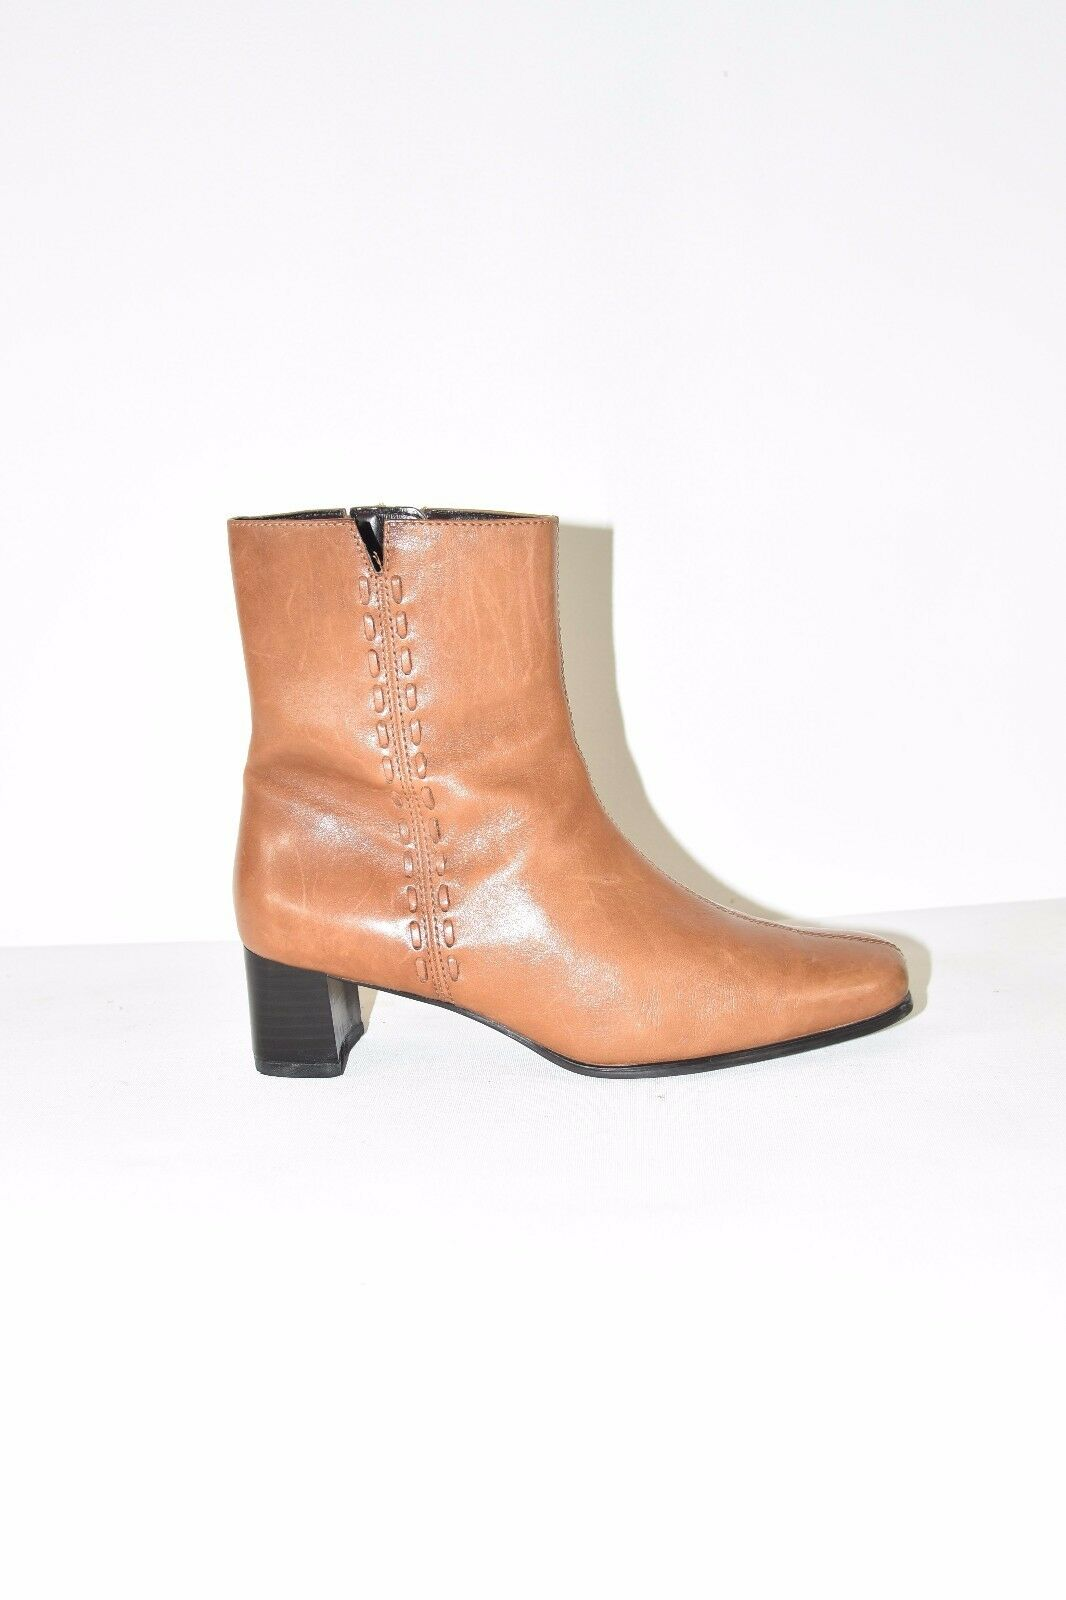 Brown Leather JANA Ankle Boot Zip Mid Heel Riding Women's Boots Size 4/37